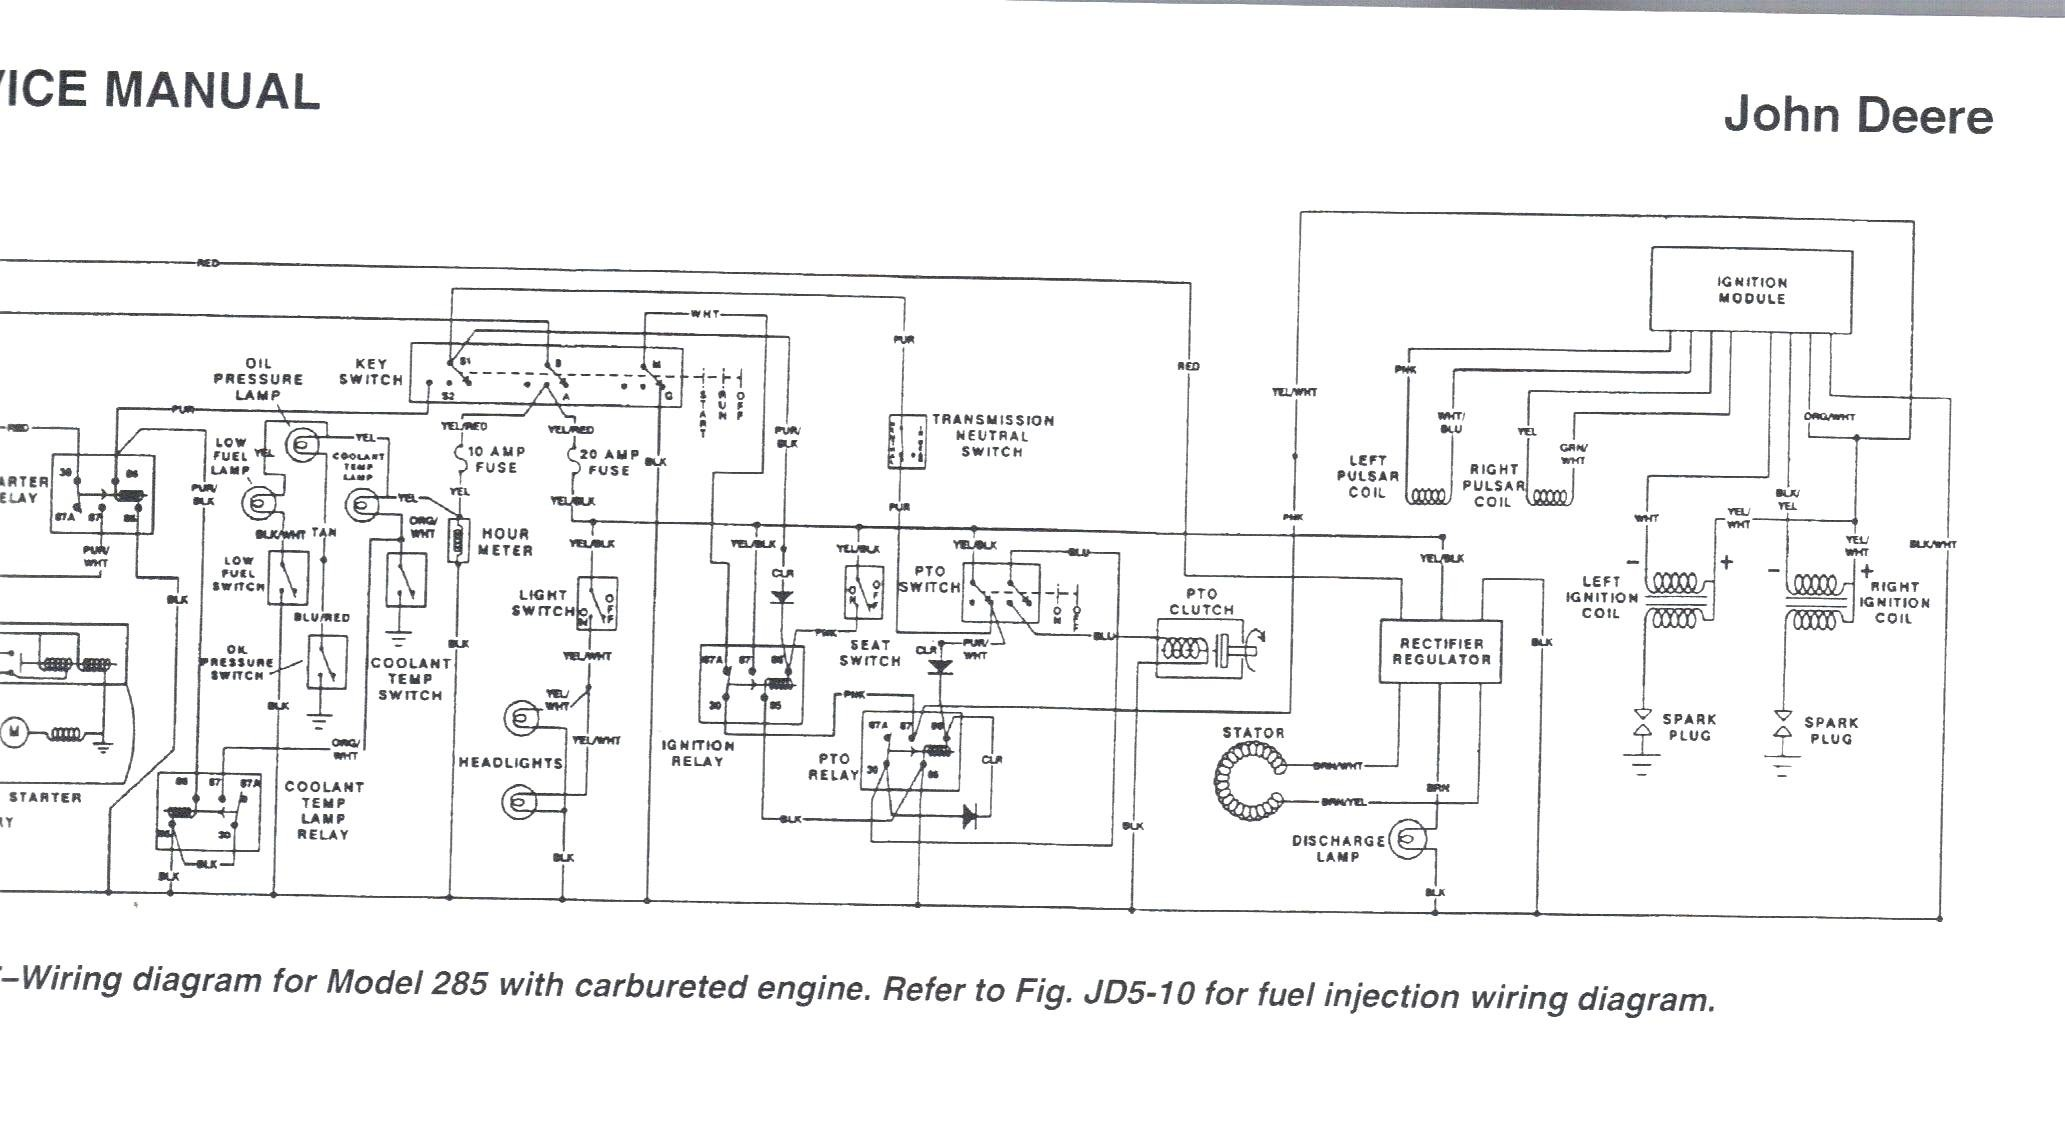 [DIAGRAM] John Deere La135 Wiring Diagram FULL Version HD